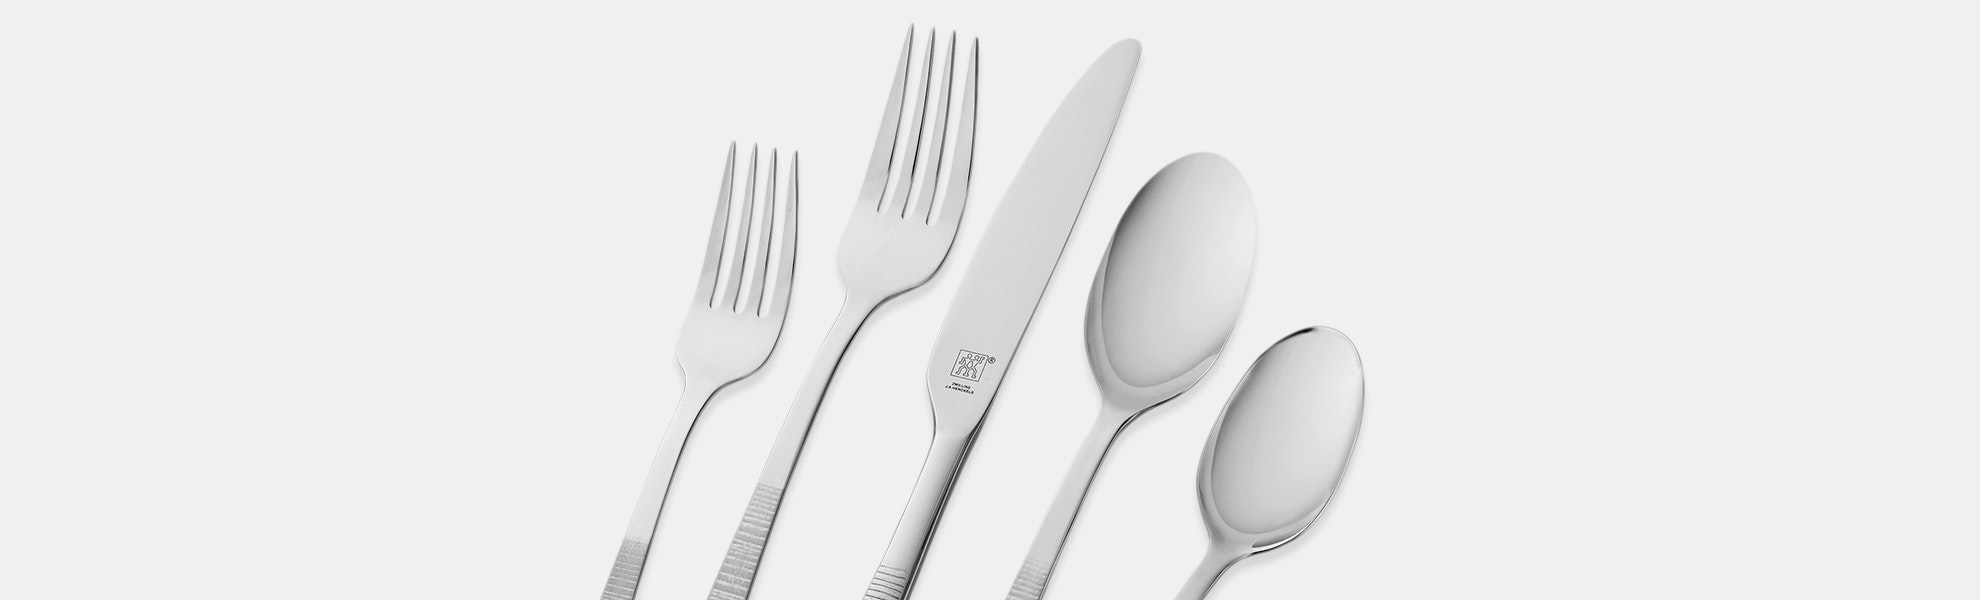 Zwilling Flatware Sets